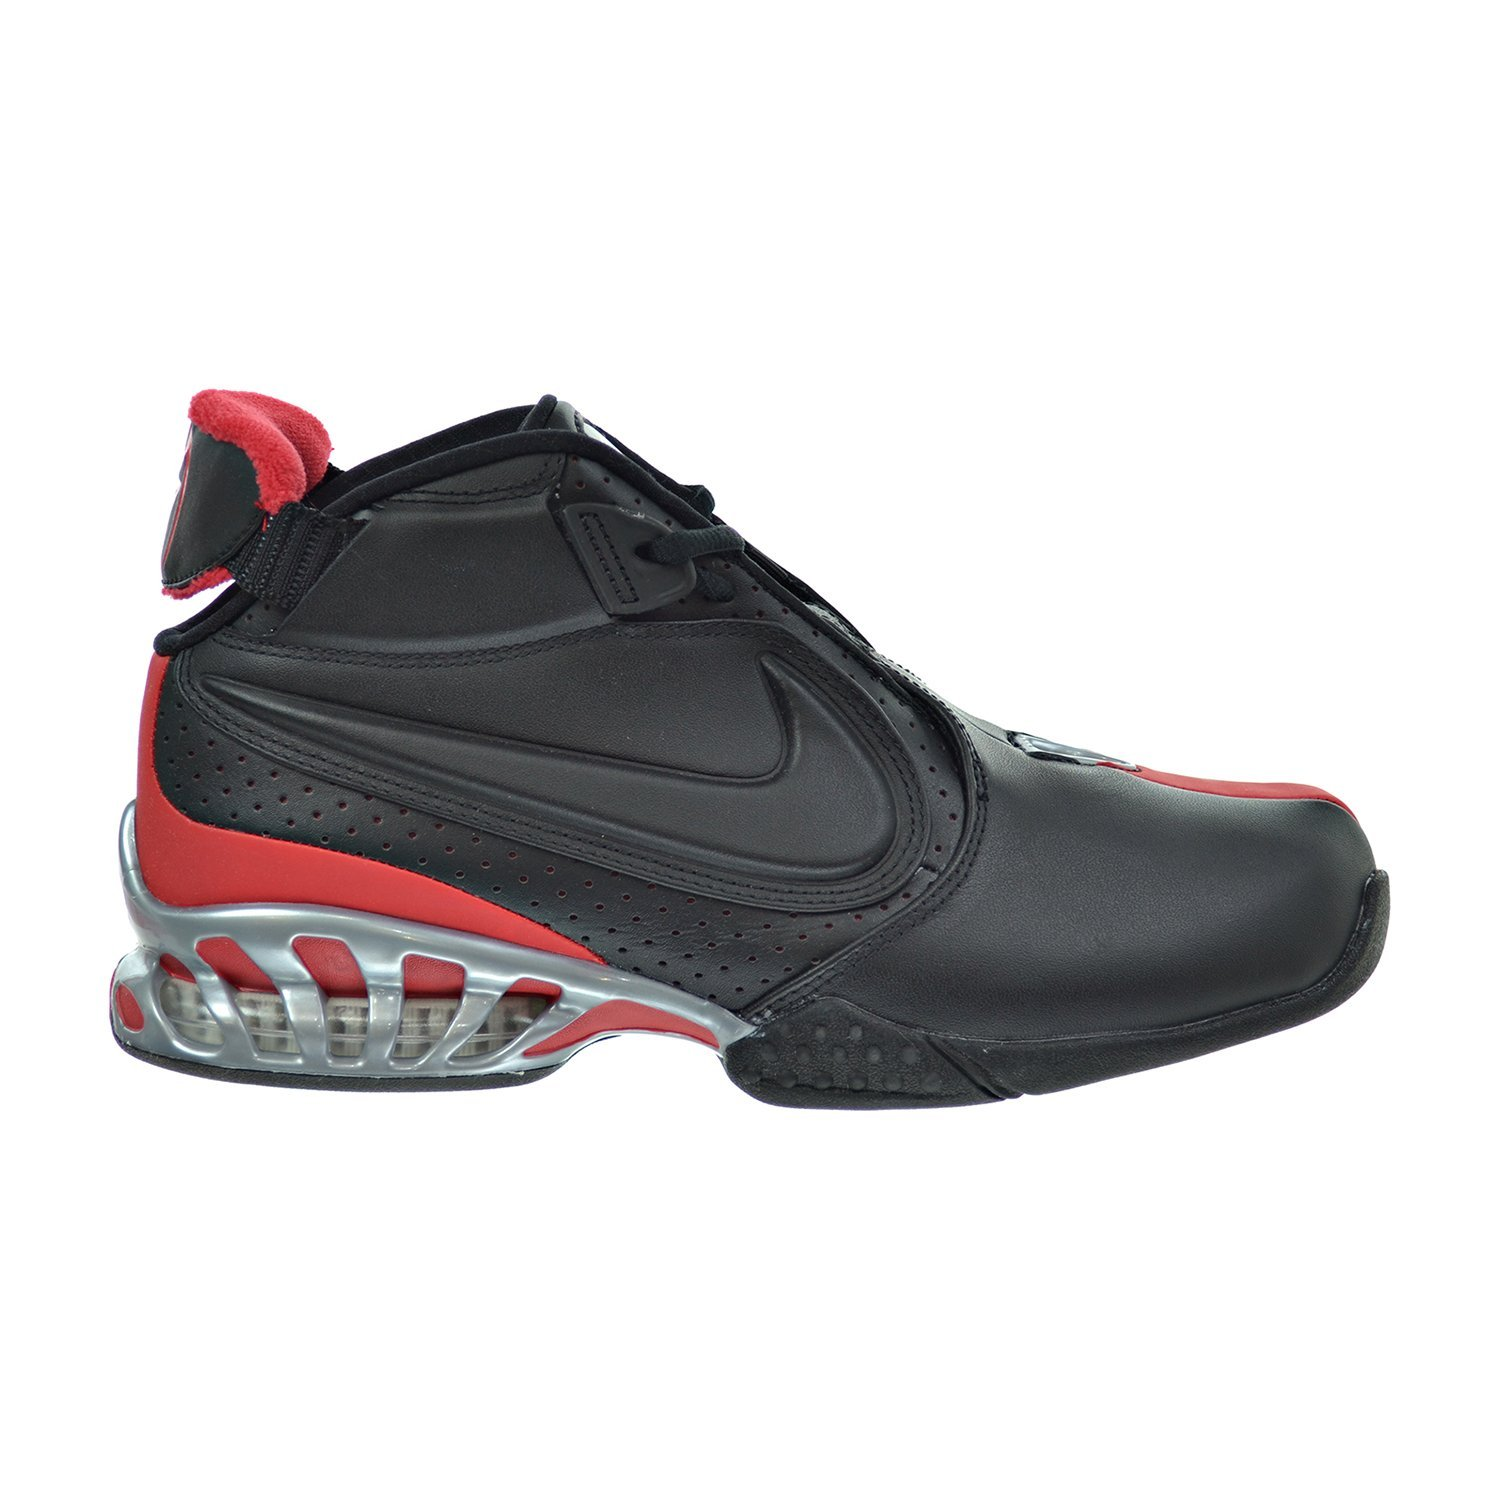 Nike Air Zoom Vick II Men\u0027s Shoes Black/Metallic Silver/University Red  599446-